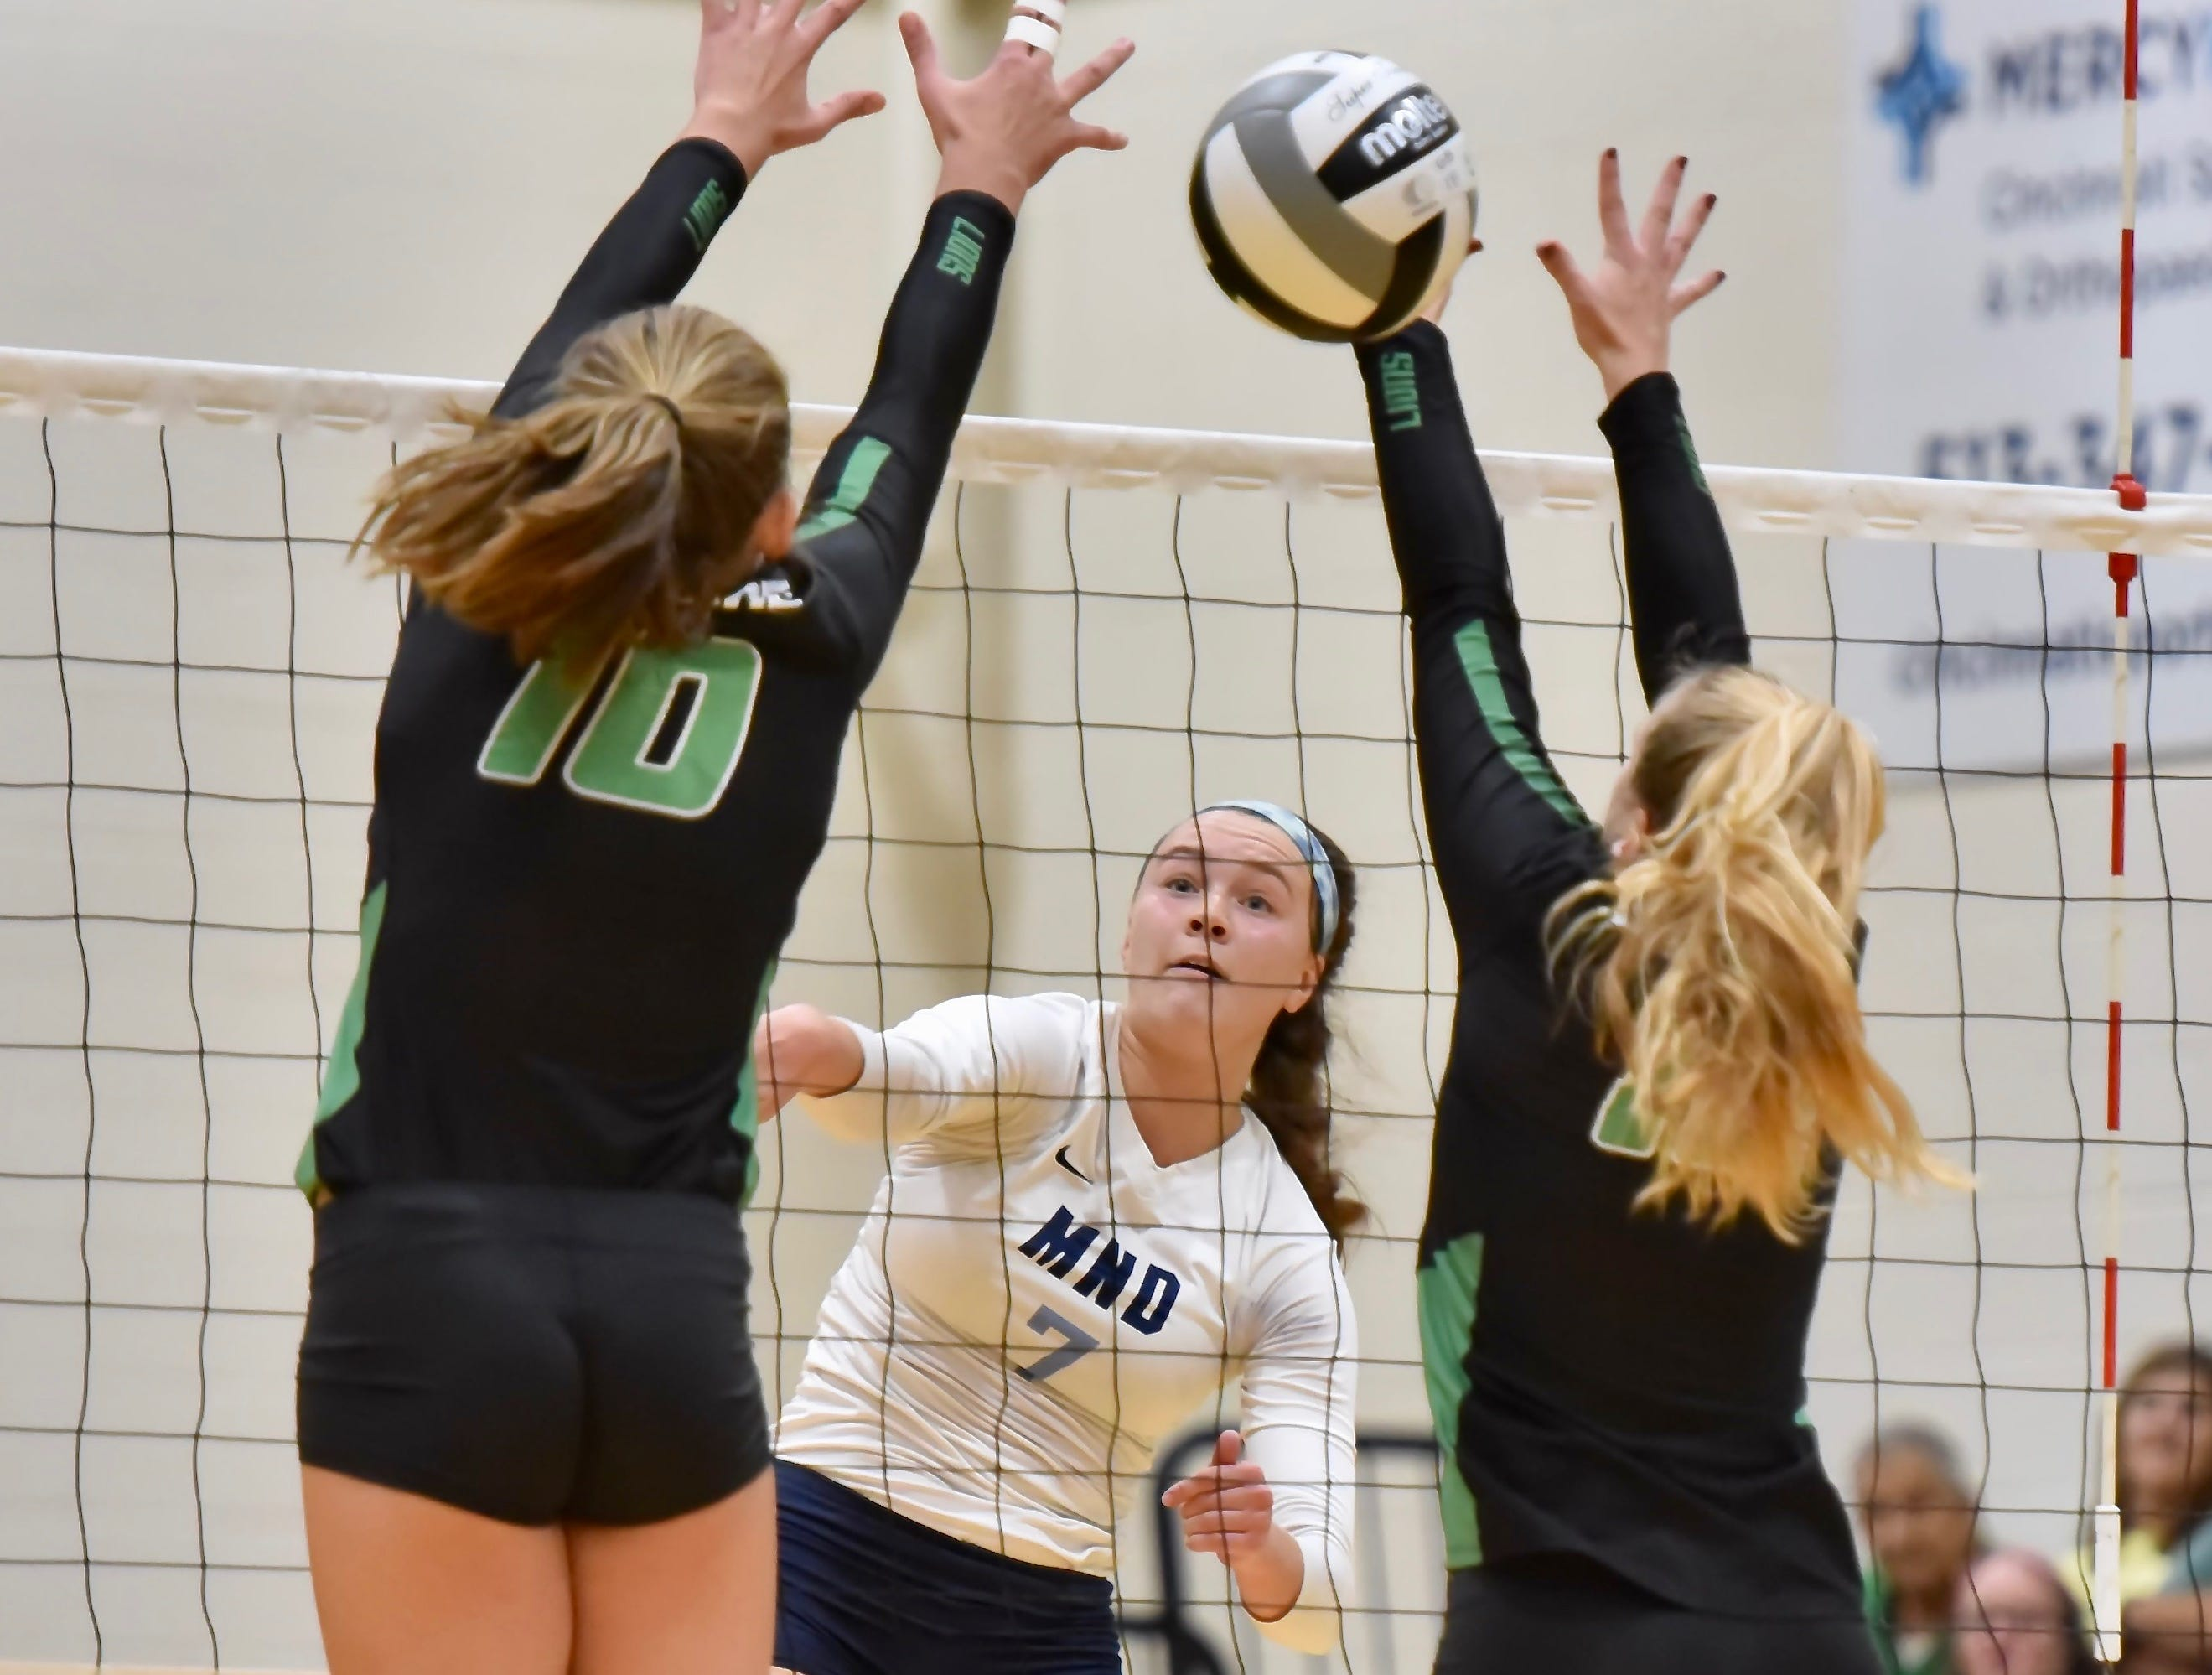 Mount Notre Dame's Olivia Marklay spikes the ball past two Ursuline defenders Tuesday, Sept. 11, 2018 at Ursuline Academy